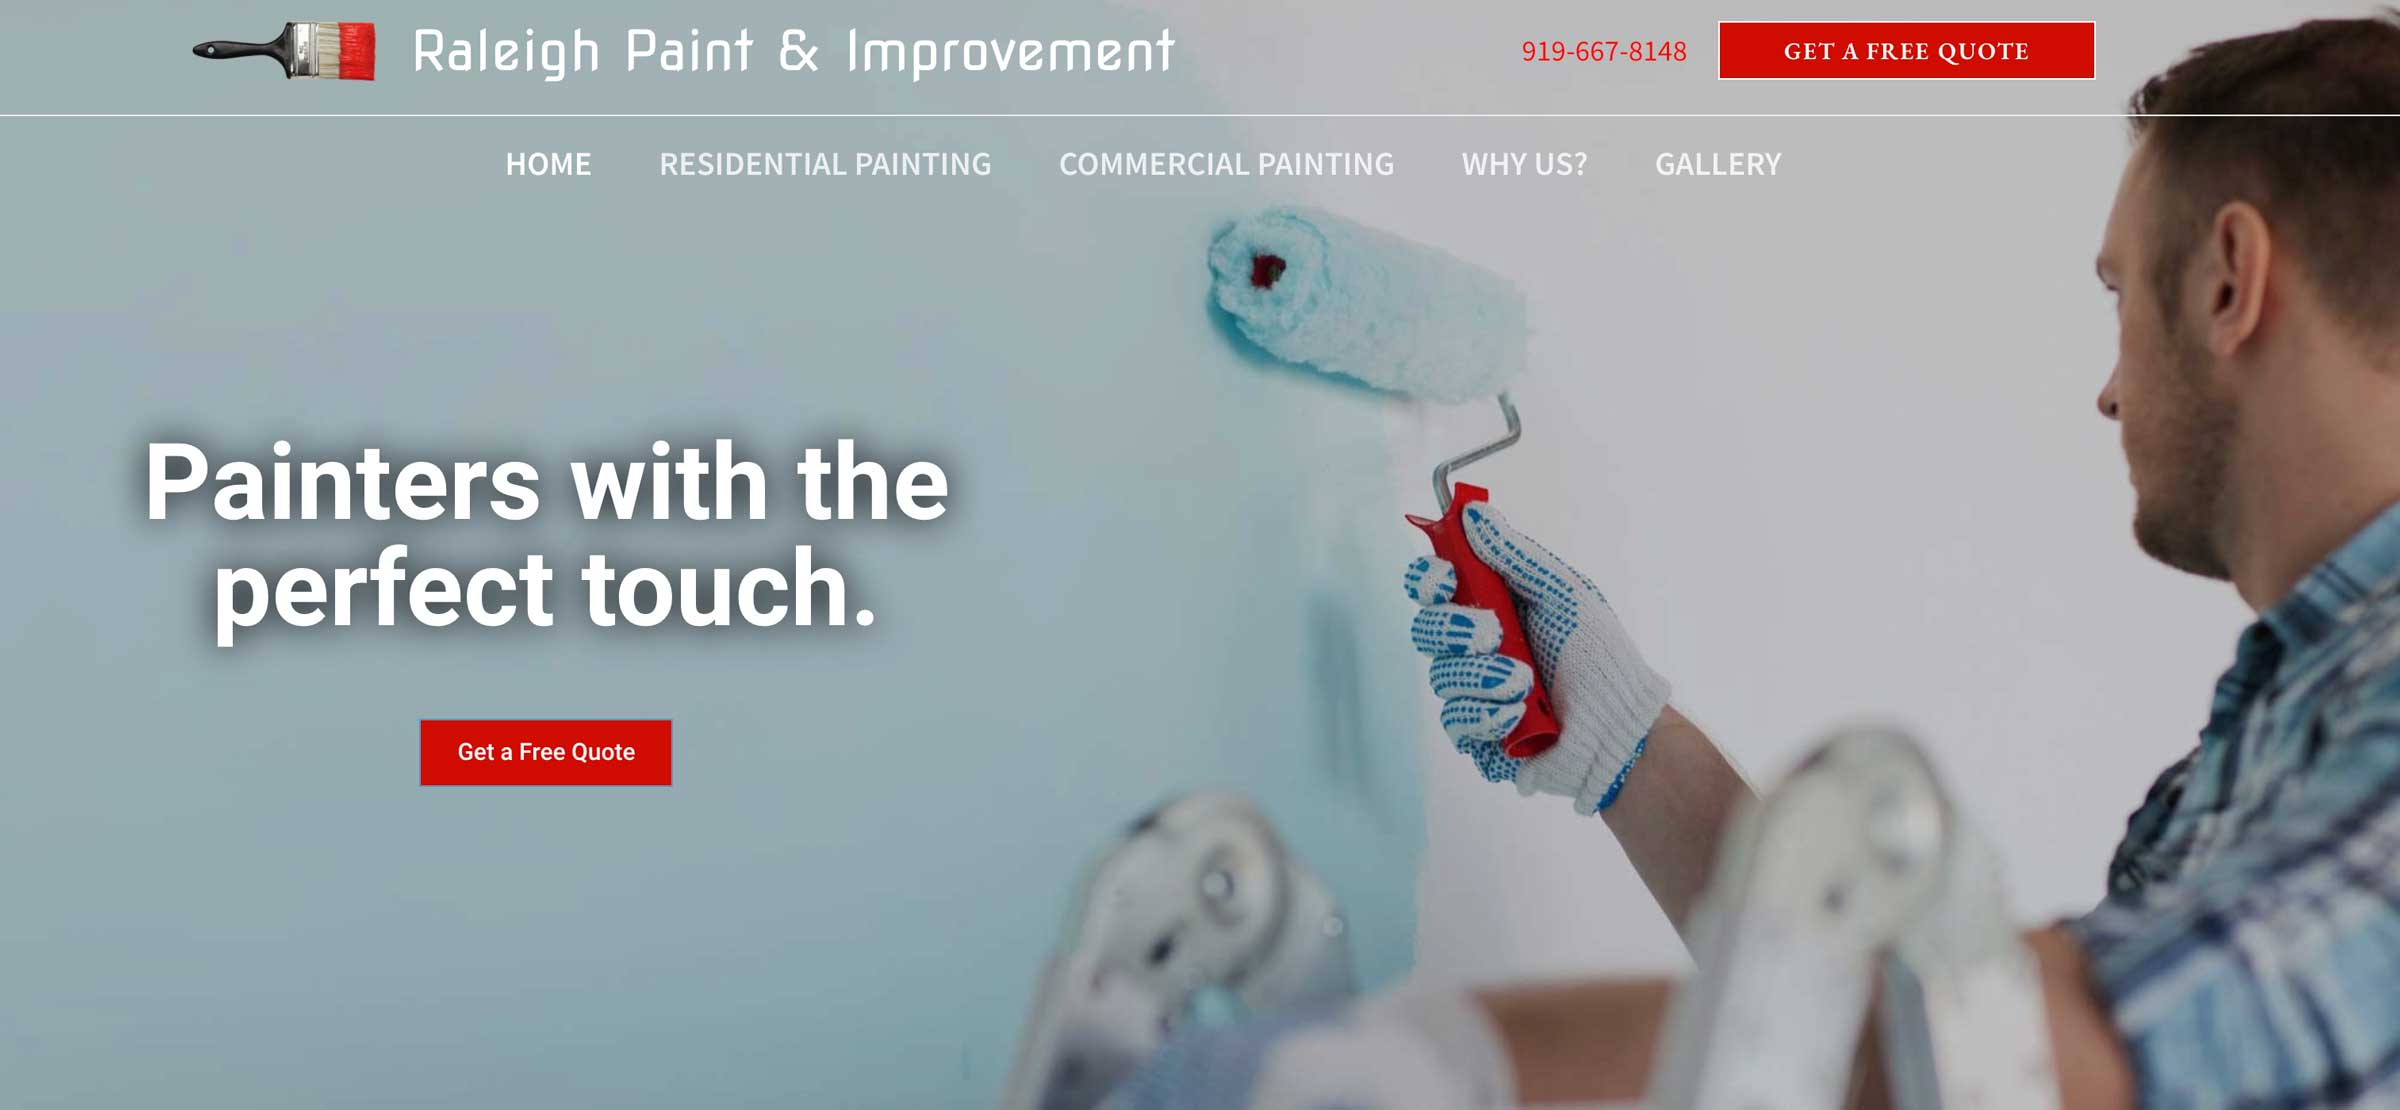 website for a Painting company in Raleigh